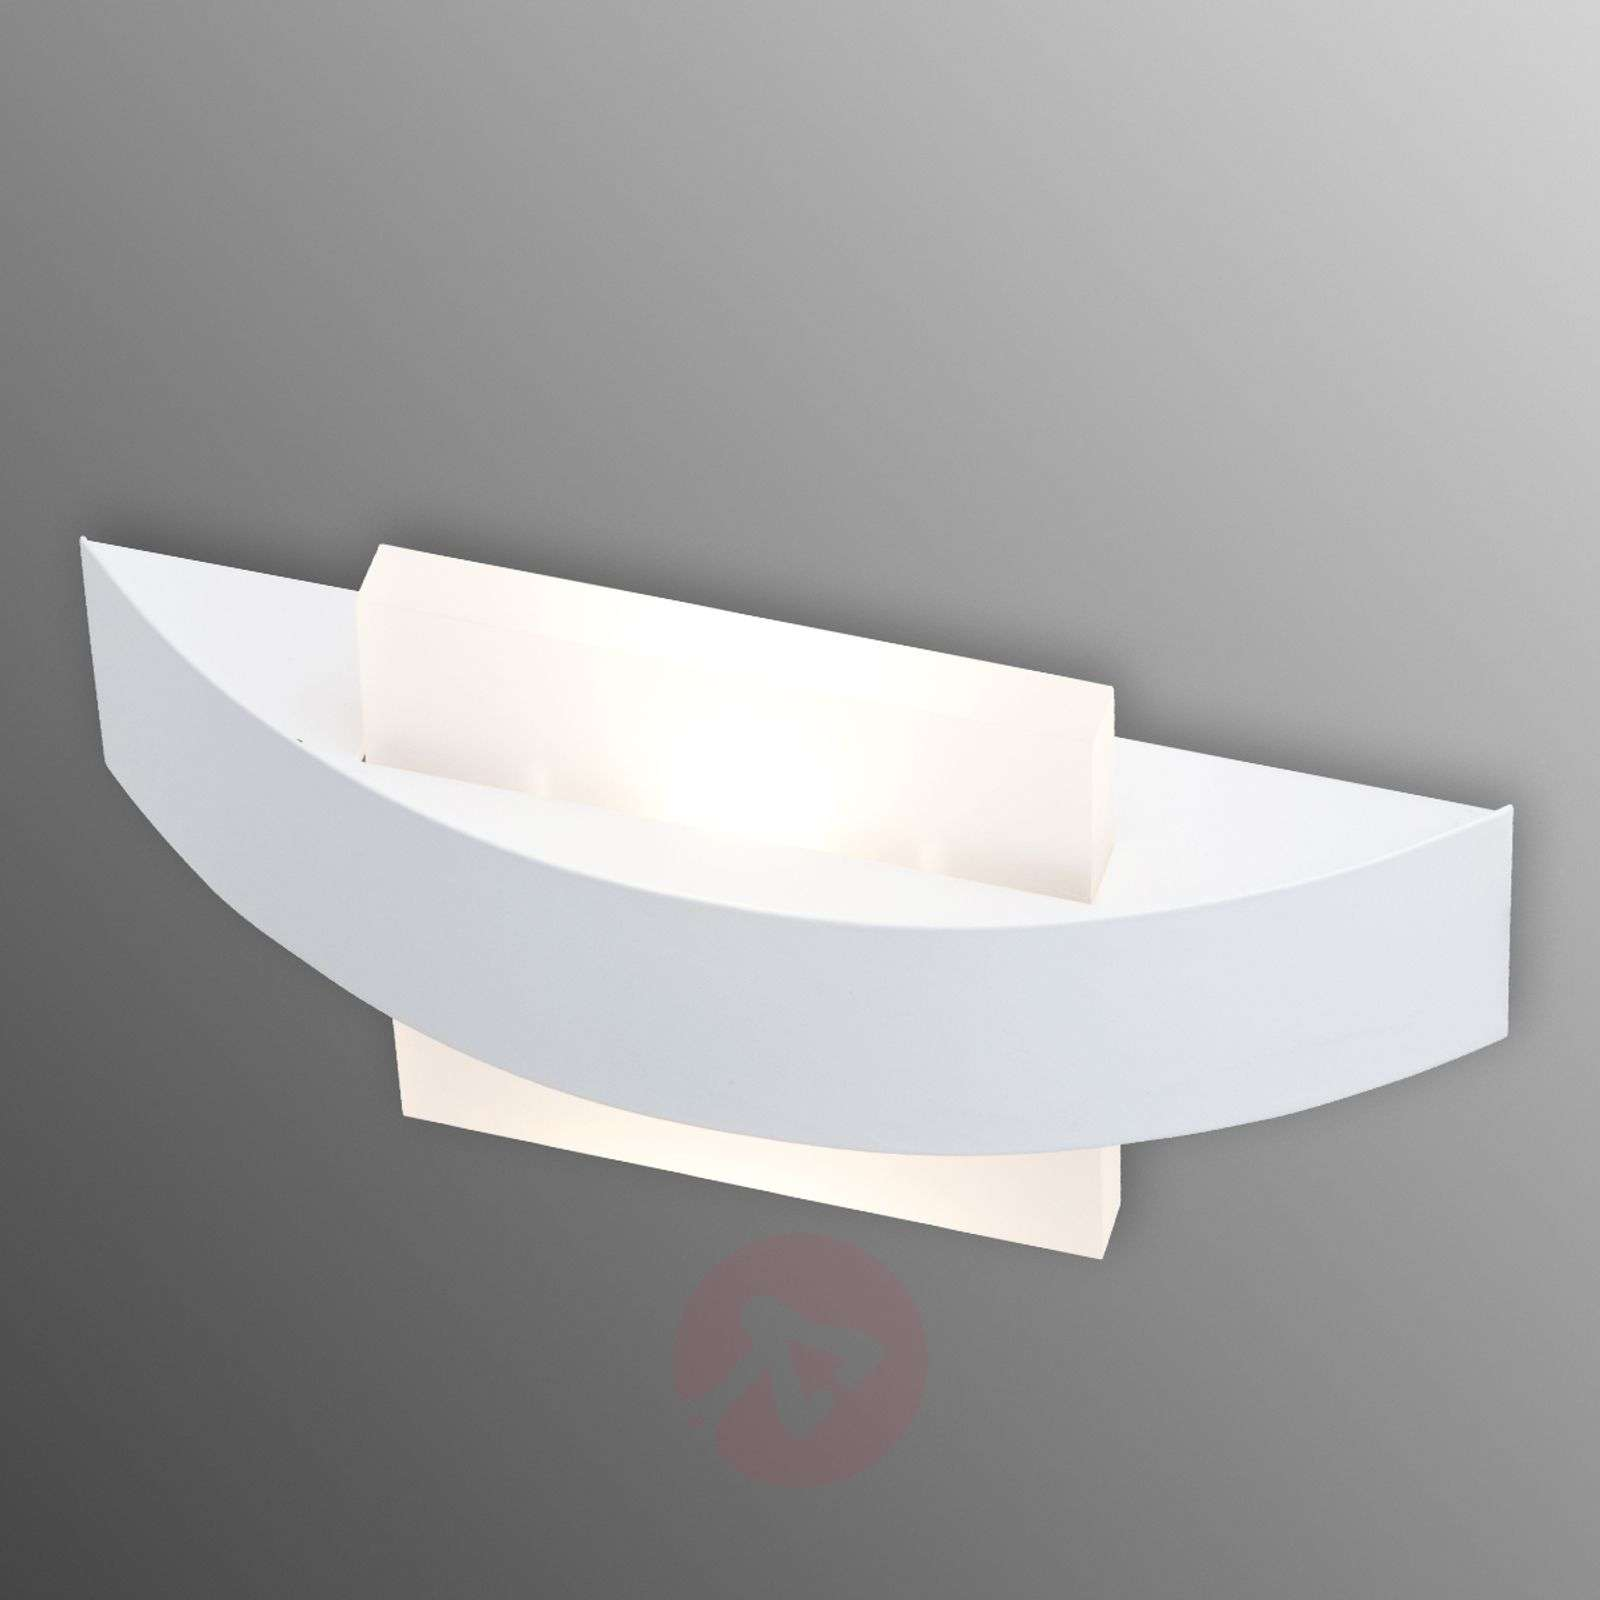 Solution applique LED avec diffuseur carré-1509033-01